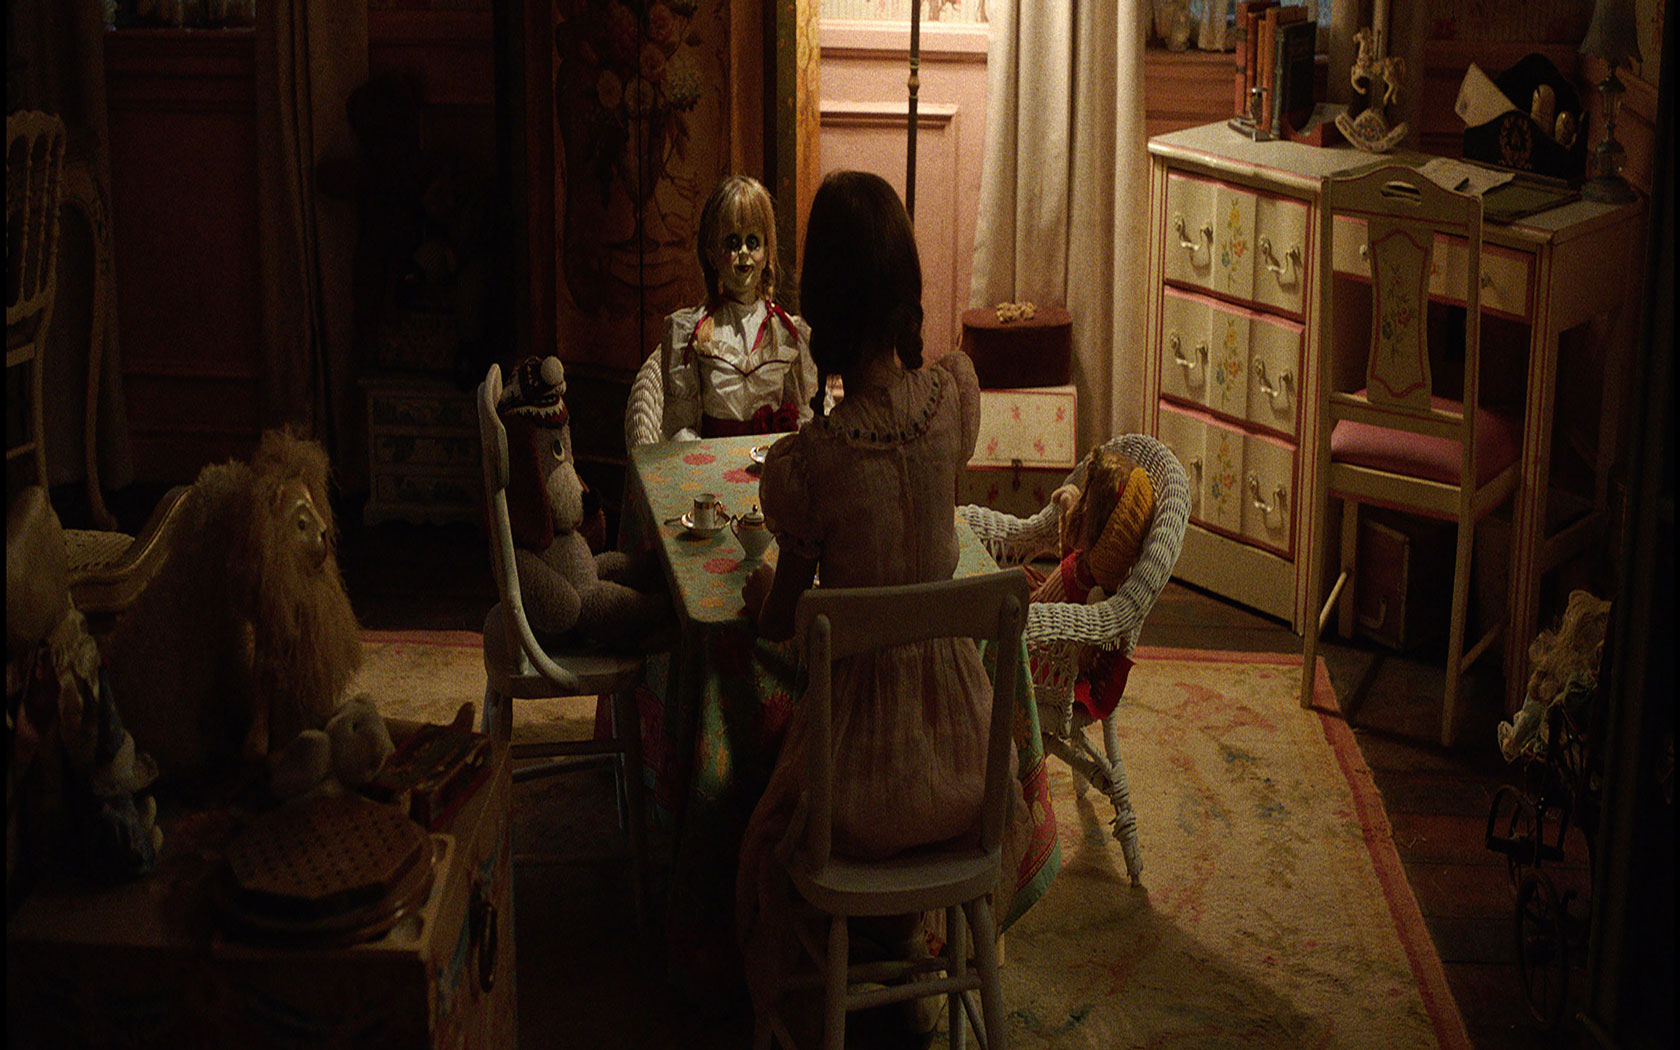 Tanweer - Annabelle: Creation